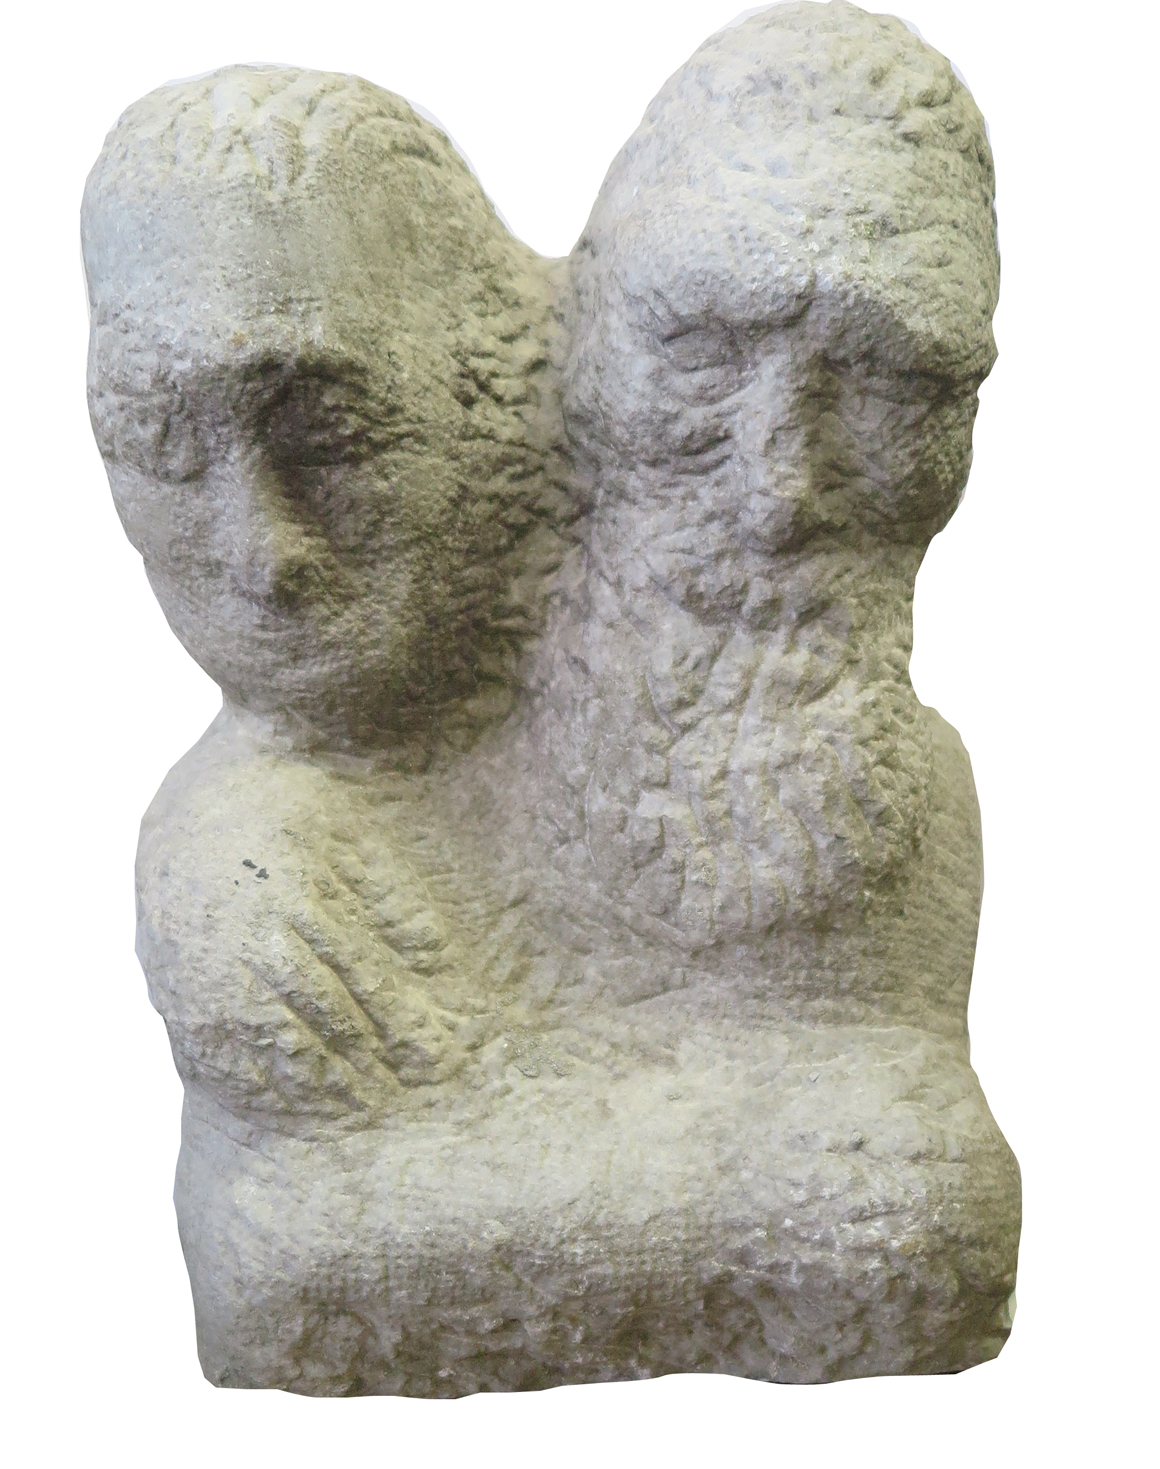 Carved Stone Sculpture Women and Men by Sam Grodensky ...